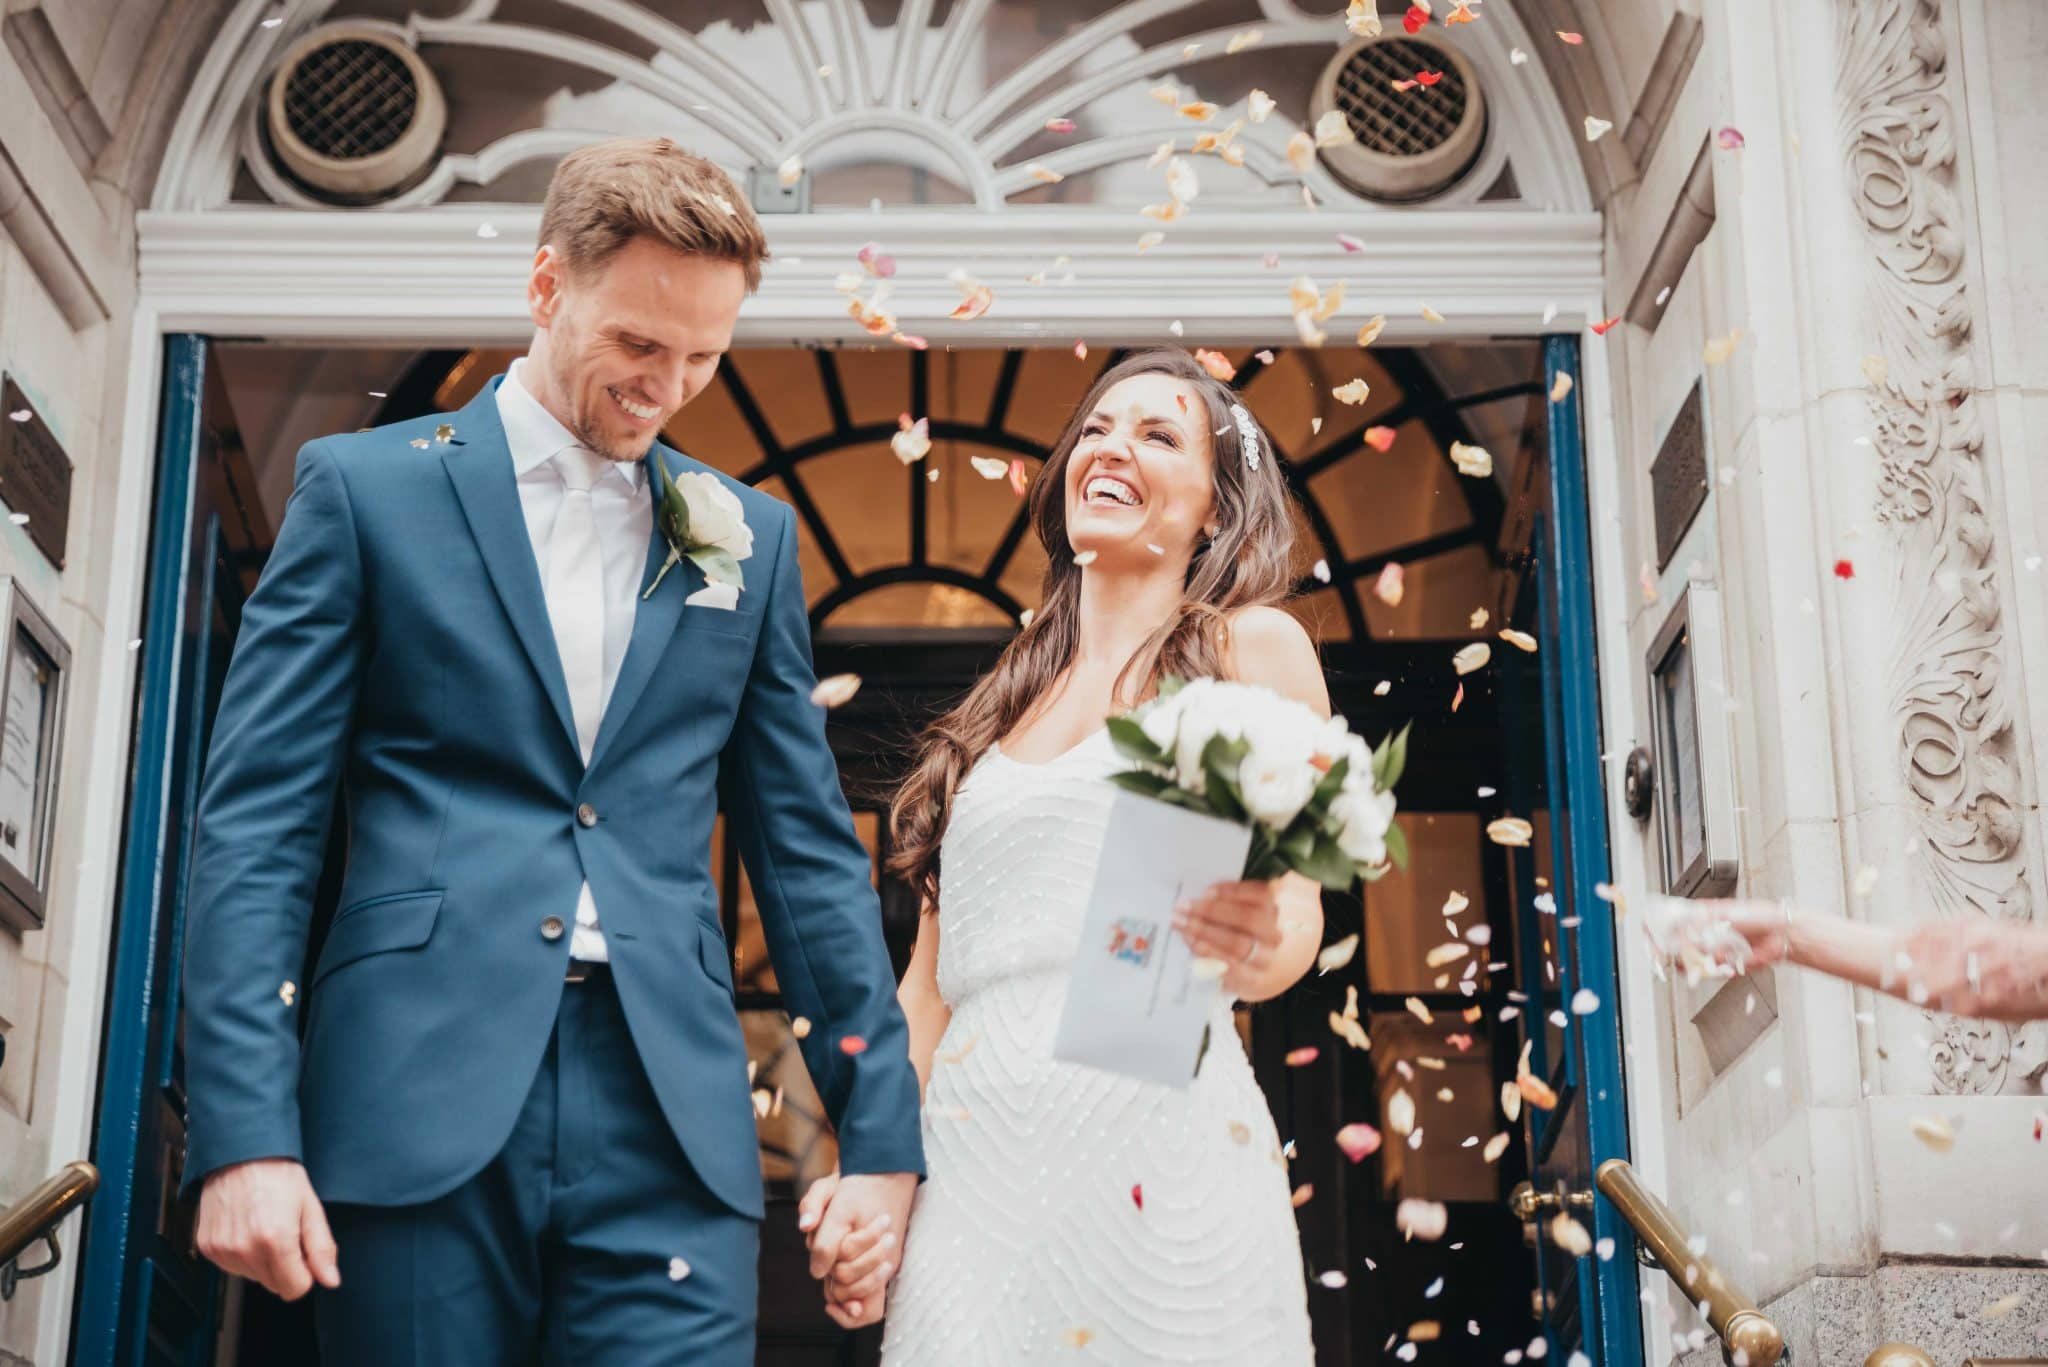 Married couple at the registry office, confetti time after the vows